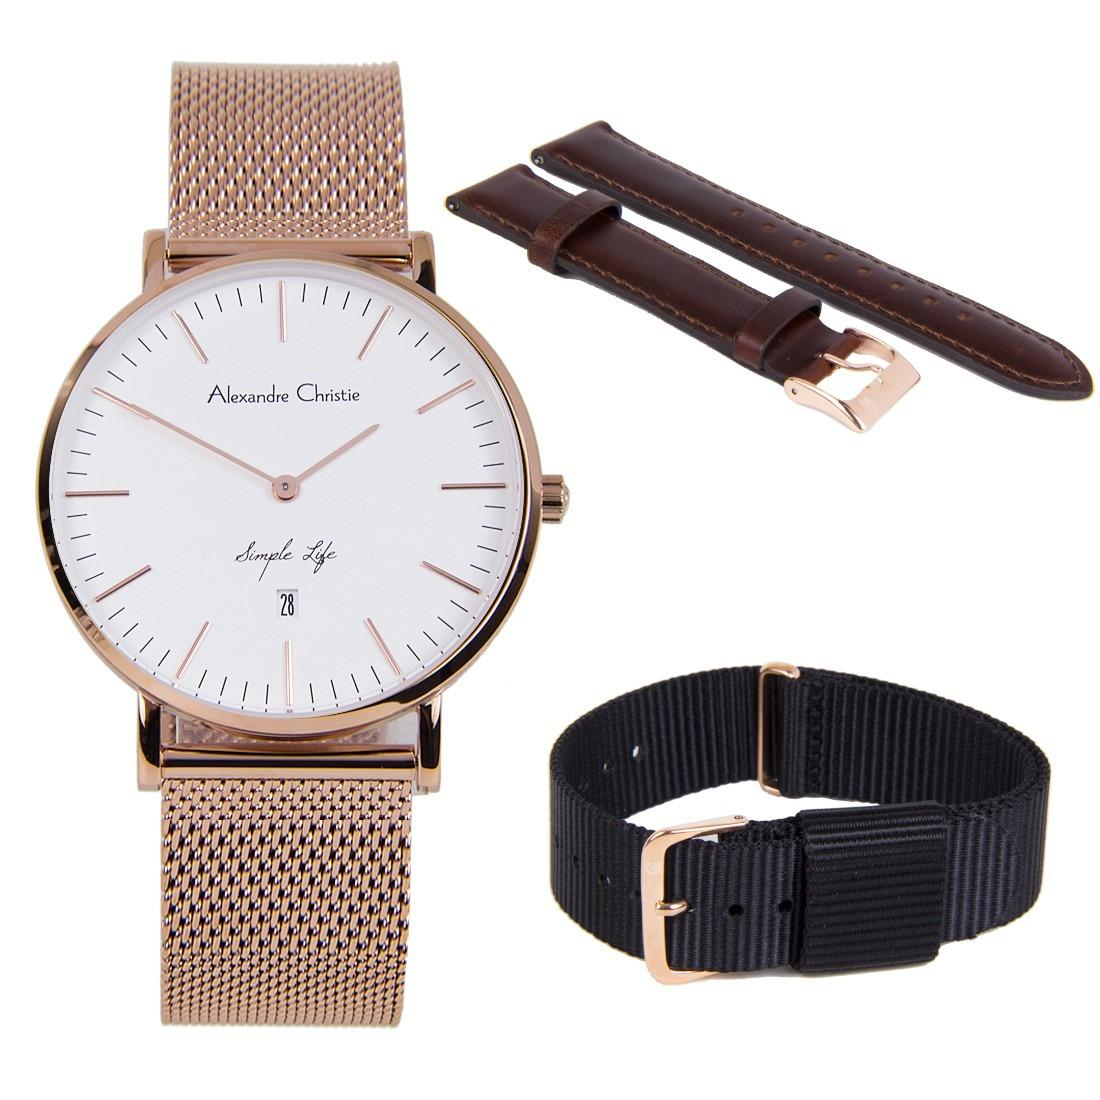 Buy Alexandre Christie Hot Lady Hand Watch Ac 2531 Silver Gold 8566ldbrgsl Simple Life Ladies Business